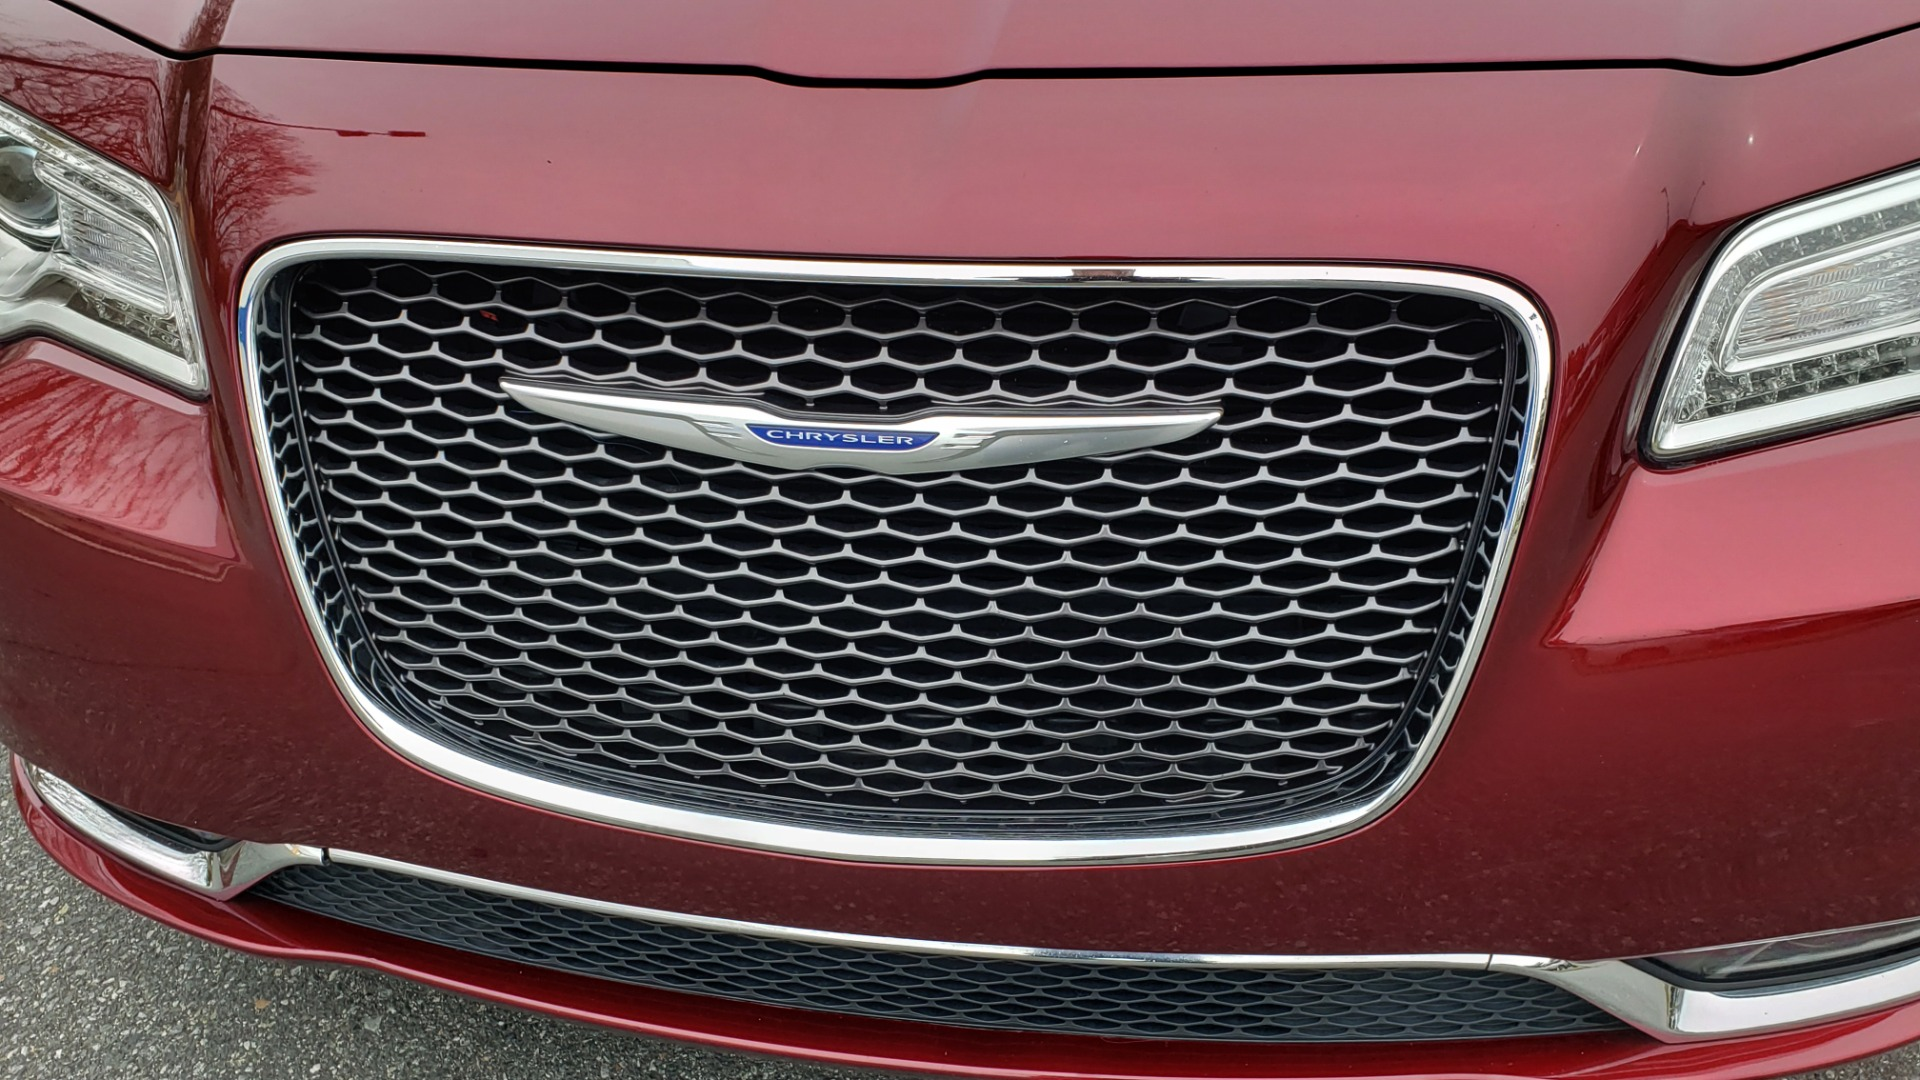 Used 2019 Chrysler 300 LIMITED / 3.6L V6 / 8-SPD AUTO / LEATHER / REARVIEW for sale Sold at Formula Imports in Charlotte NC 28227 28